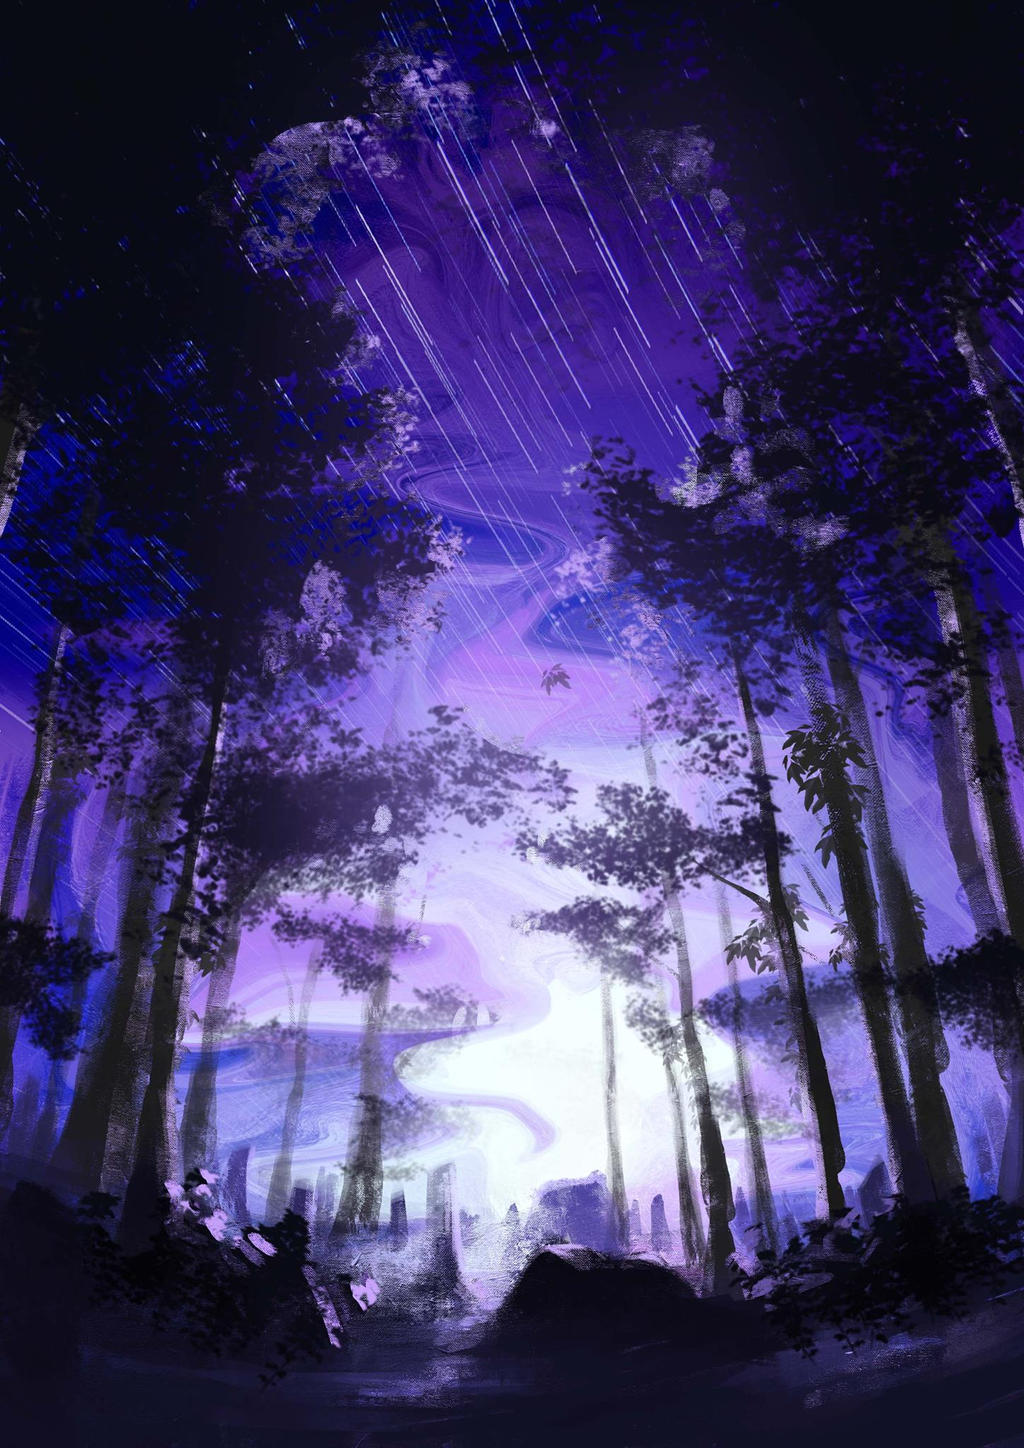 Starry Forest by namDs666